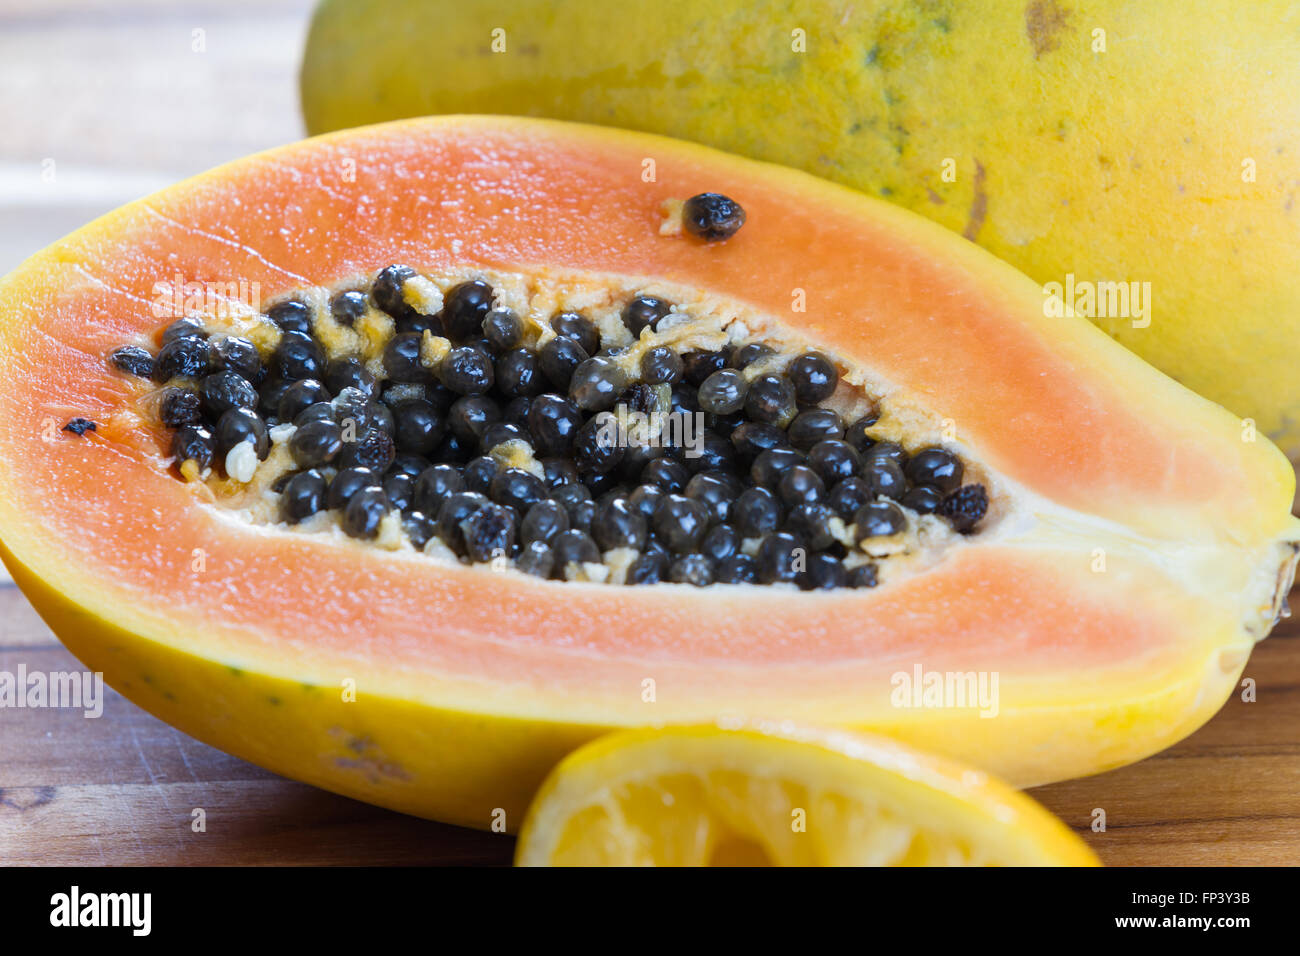 close up of a papaya cut in half revealing the meat and a pile of dark slimy seeds - Stock Image